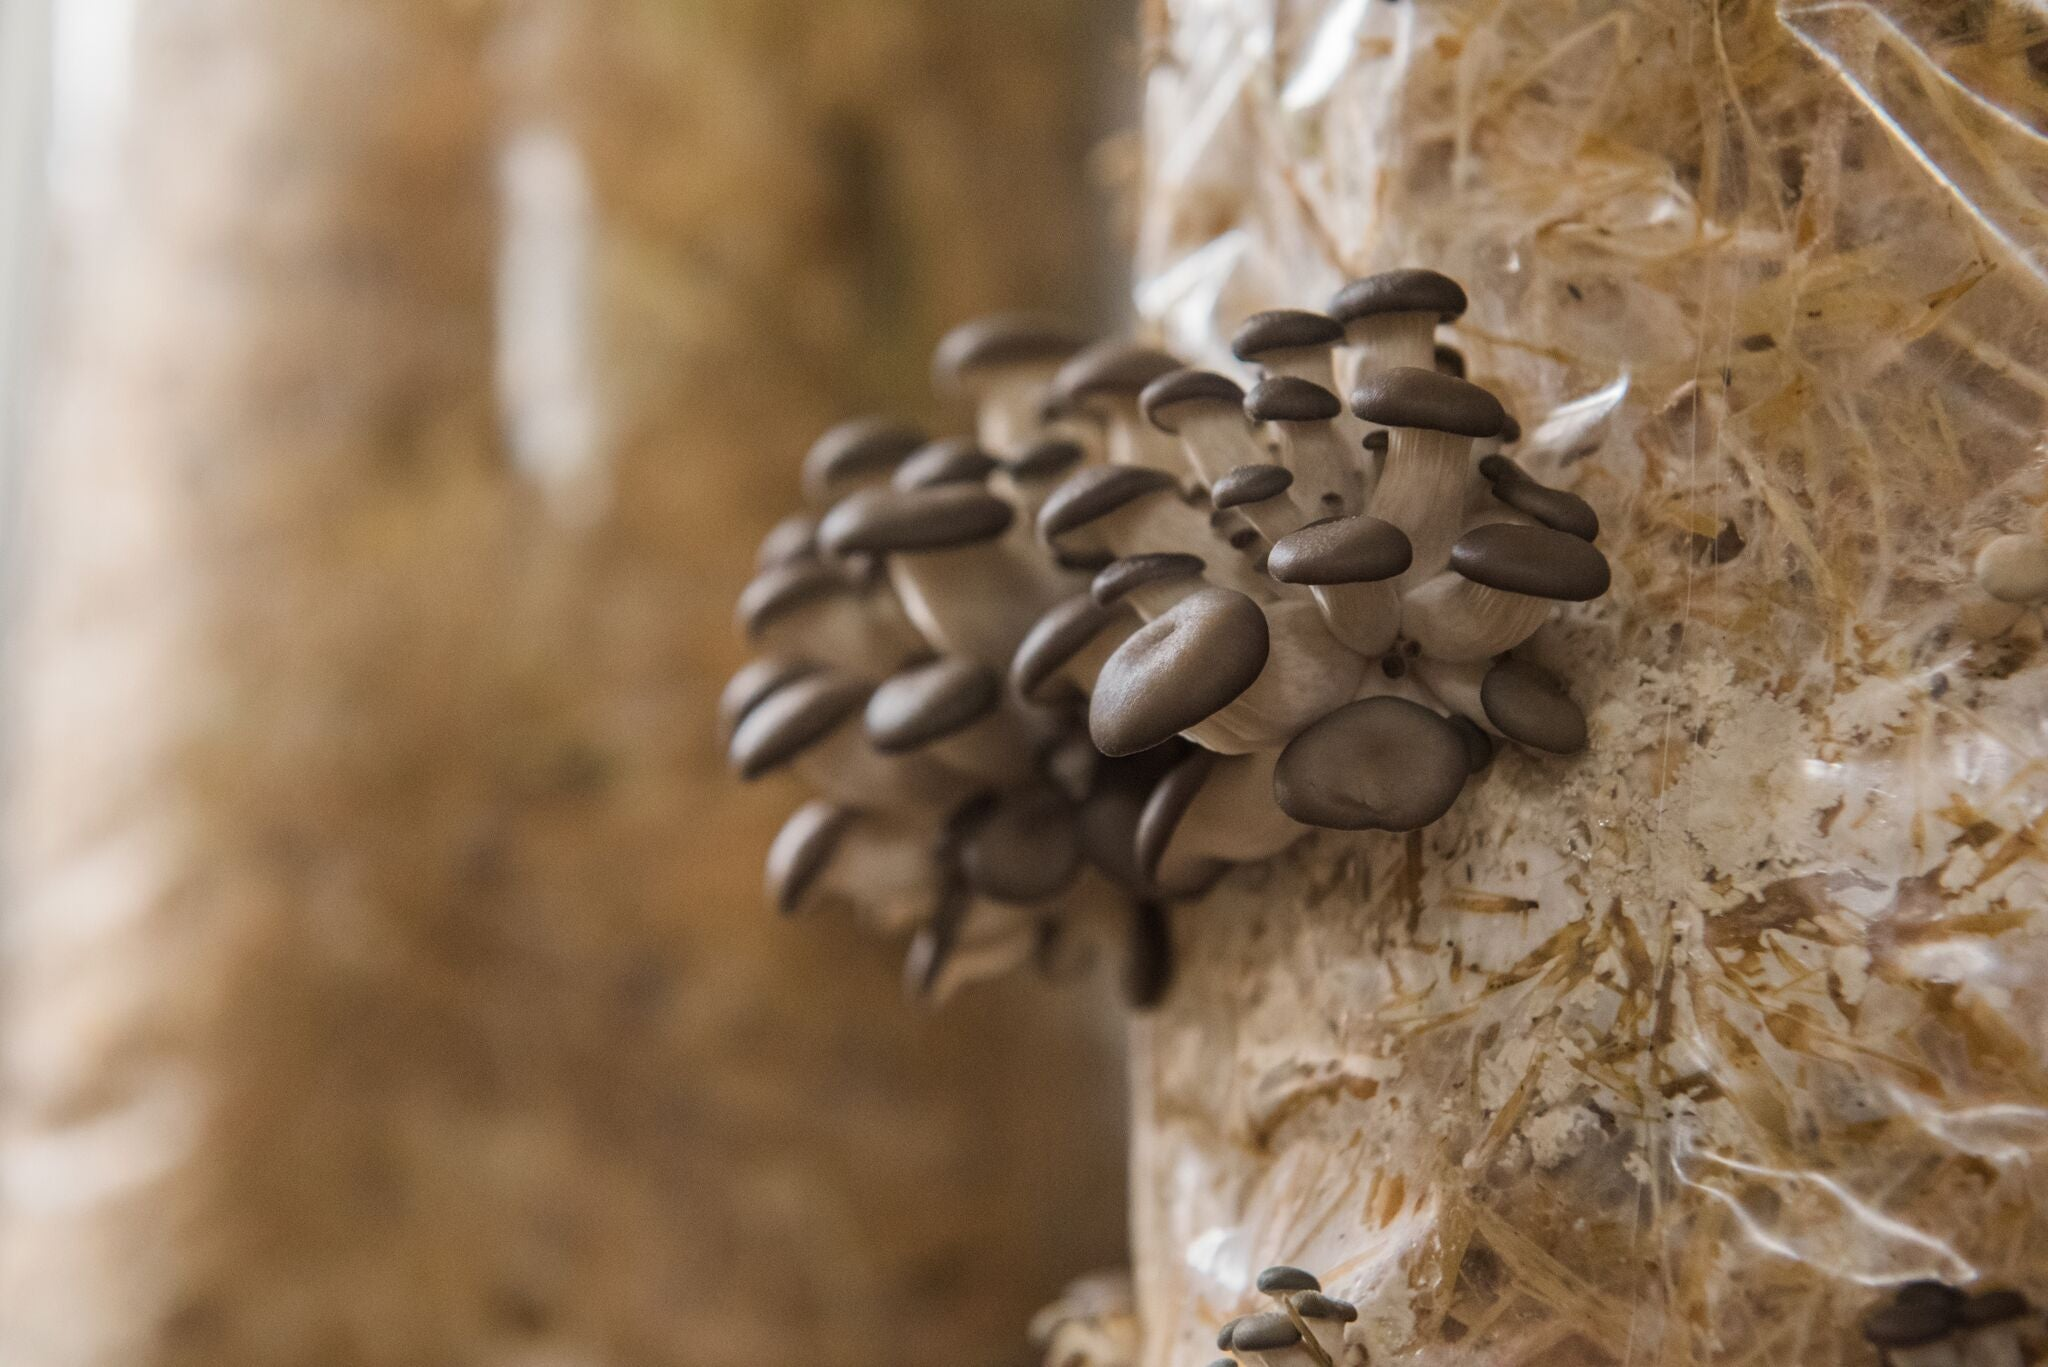 Functional Mushrooms: The beauty of Shiitake